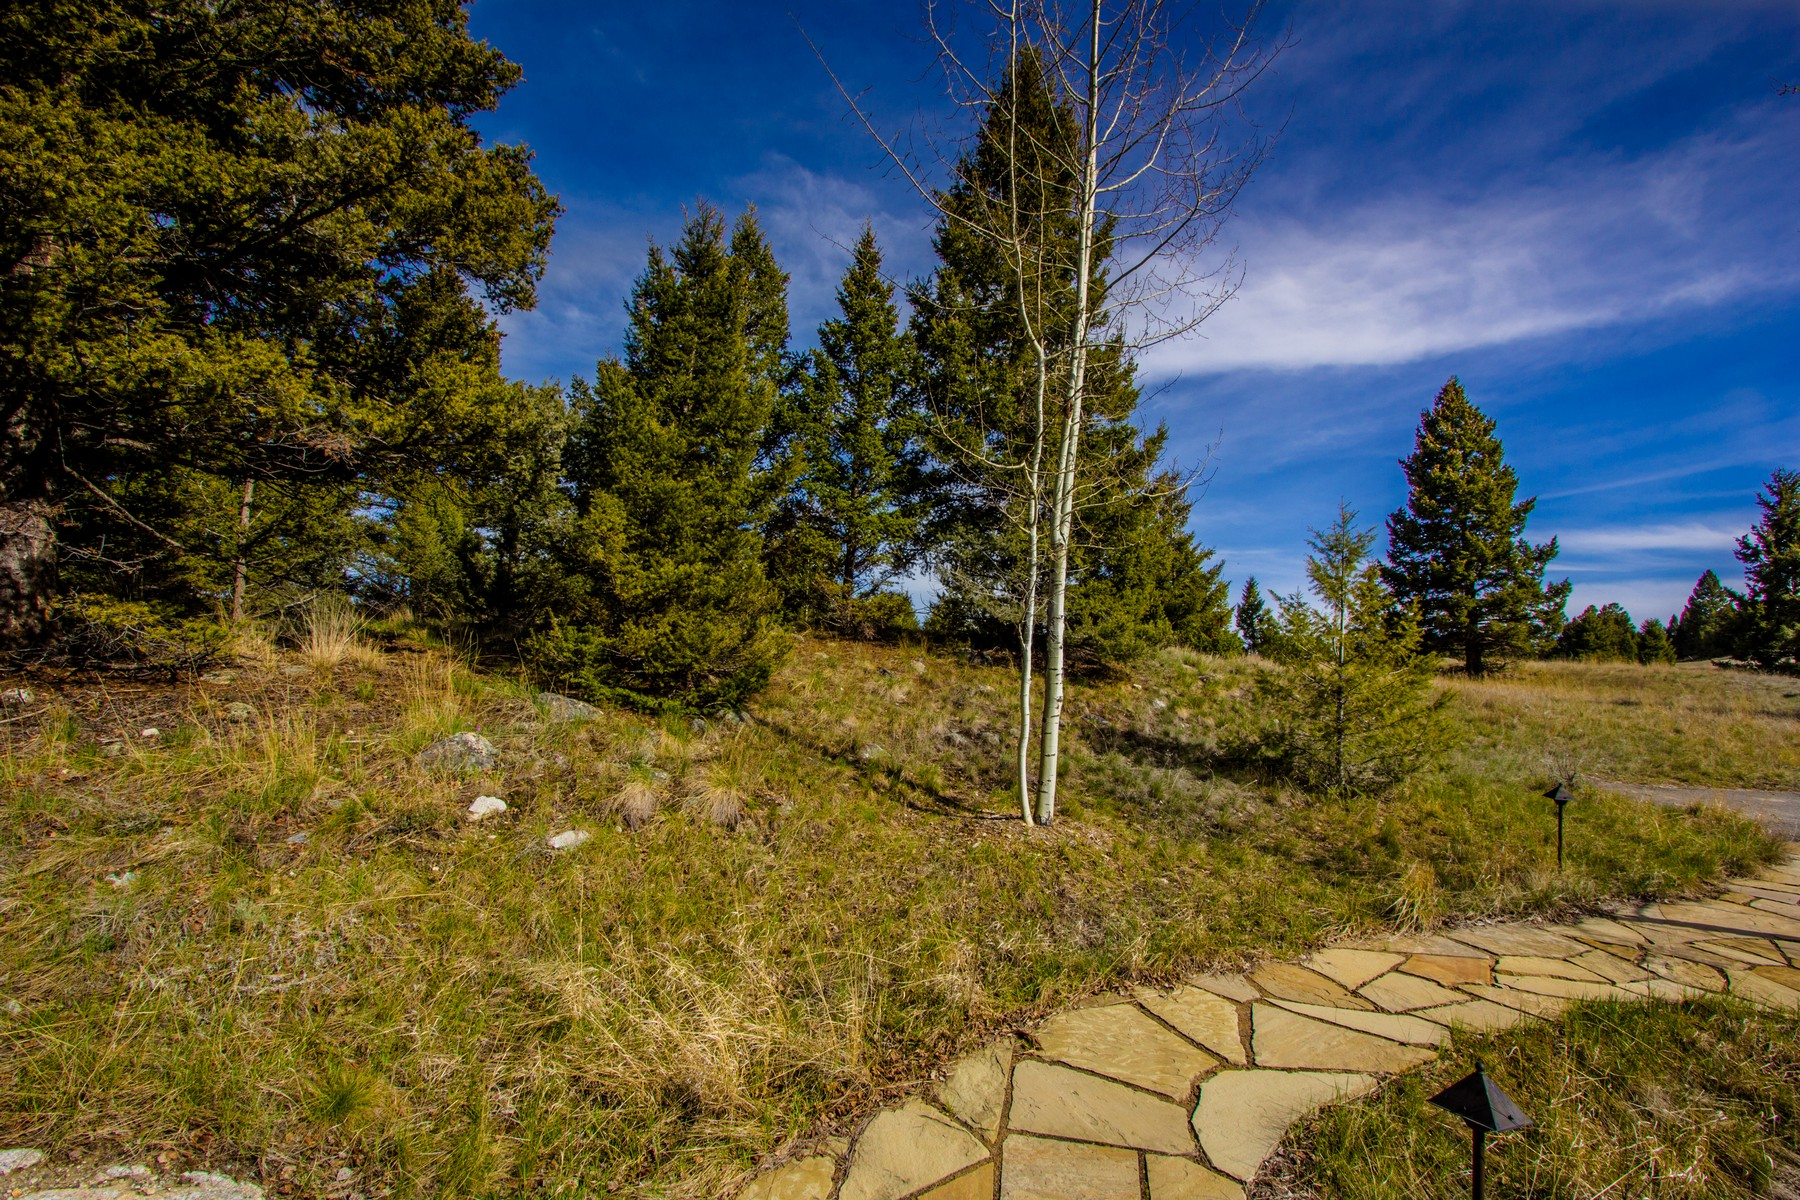 Additional photo for property listing at 66 Williams Dr , Deer Lodge, MT 59722 66  Williams Dr Deer Lodge, Montana 59722 United States